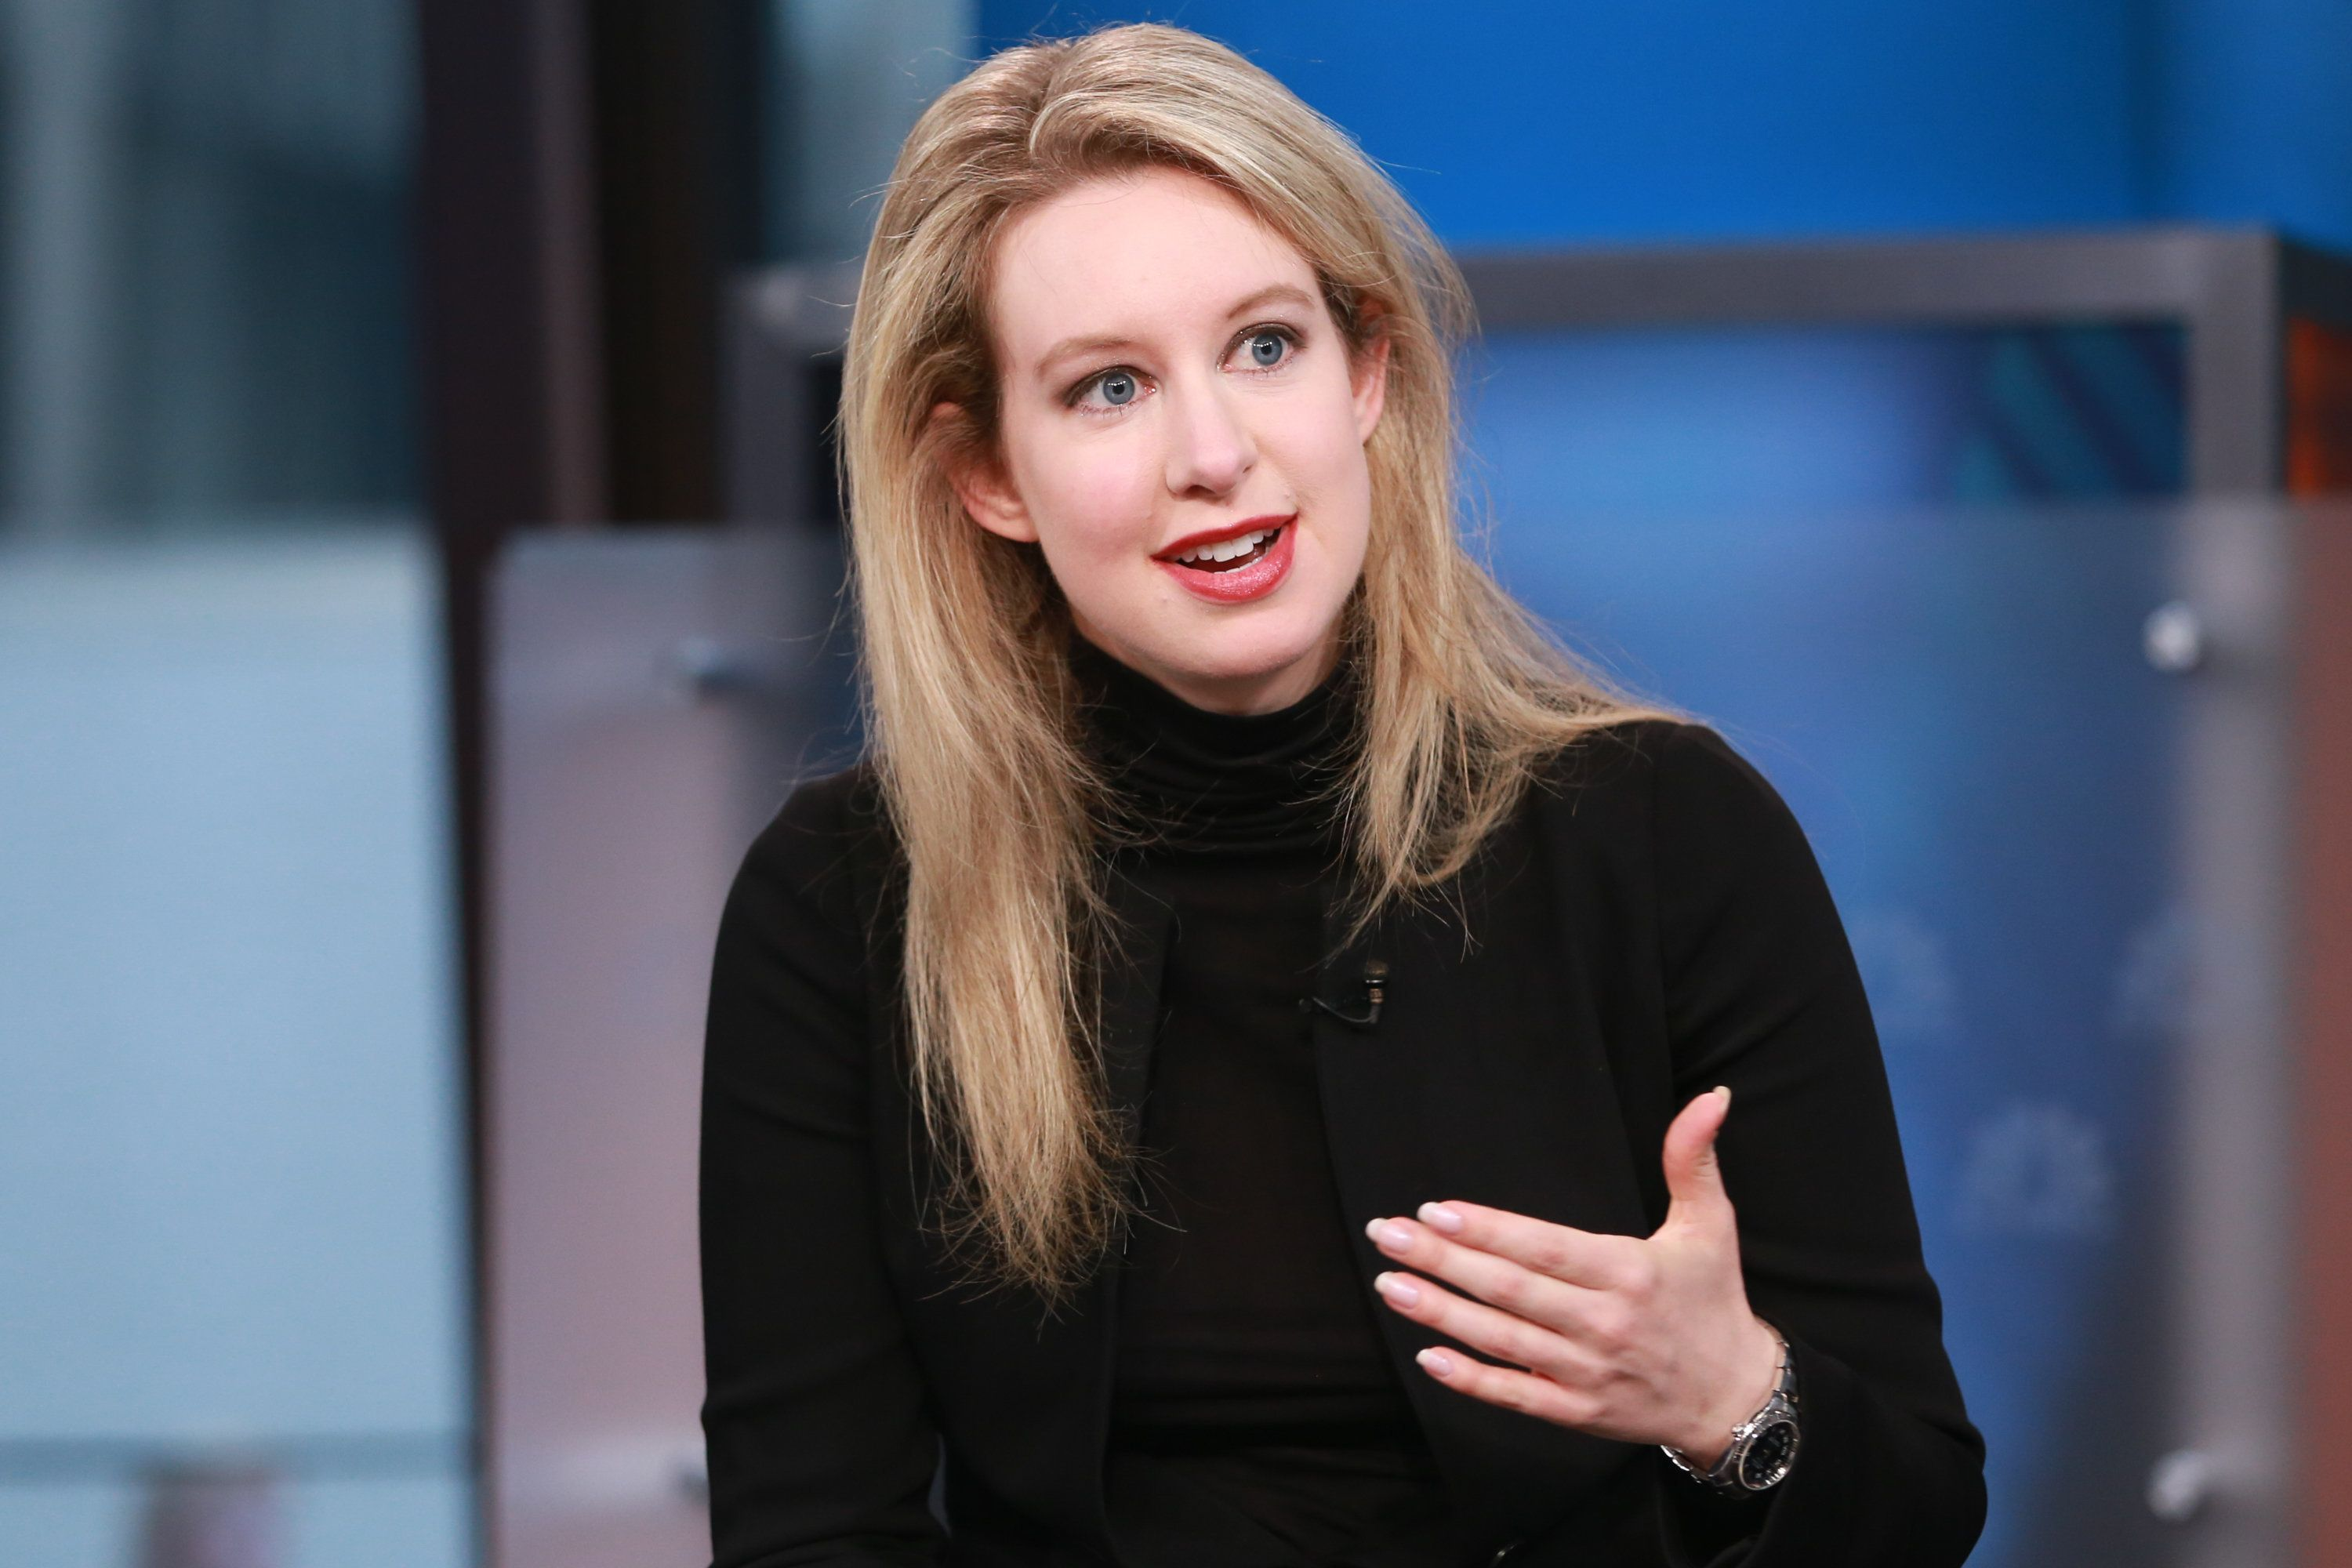 Nutritionists Weigh In On Elizabeth Holmes' Ultra-Restrictive Diet